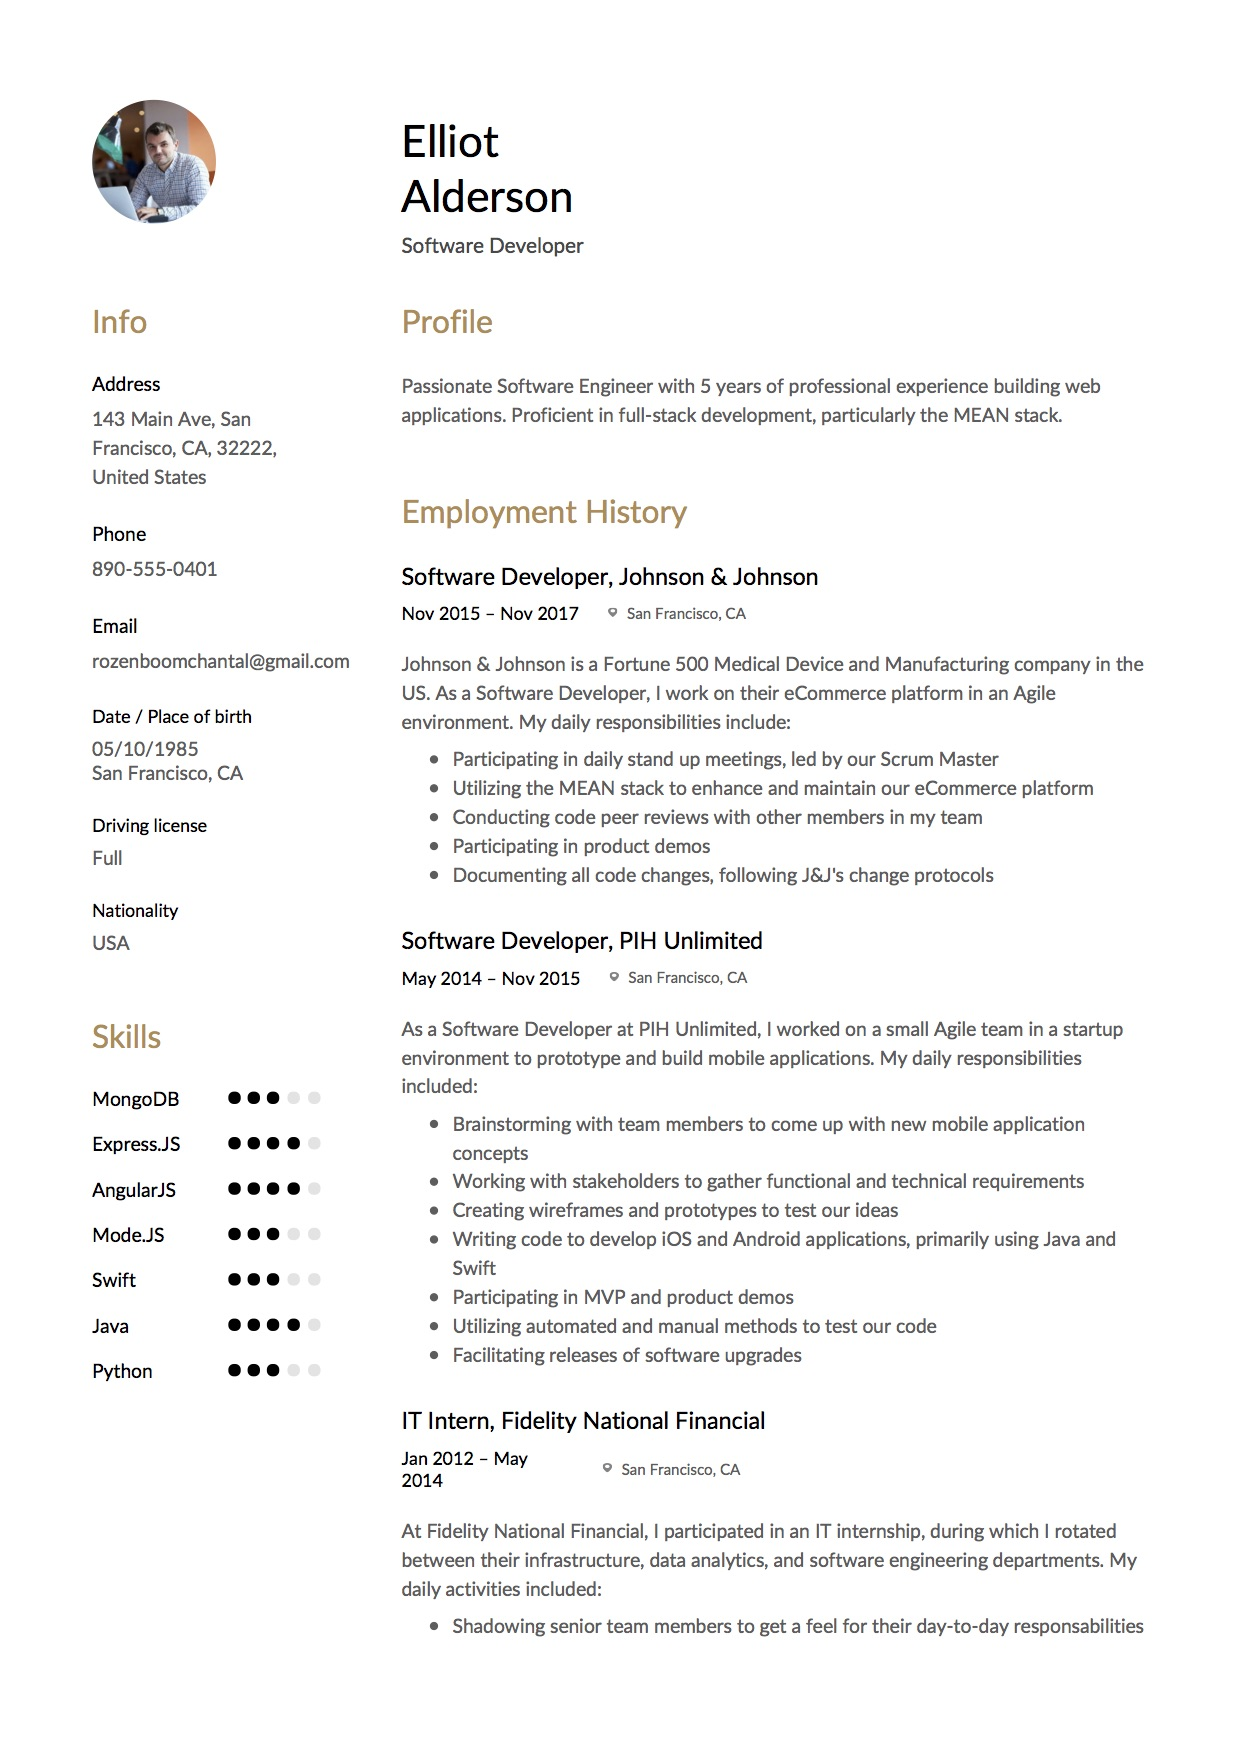 resume for software developer - Angularjs Developer Resume